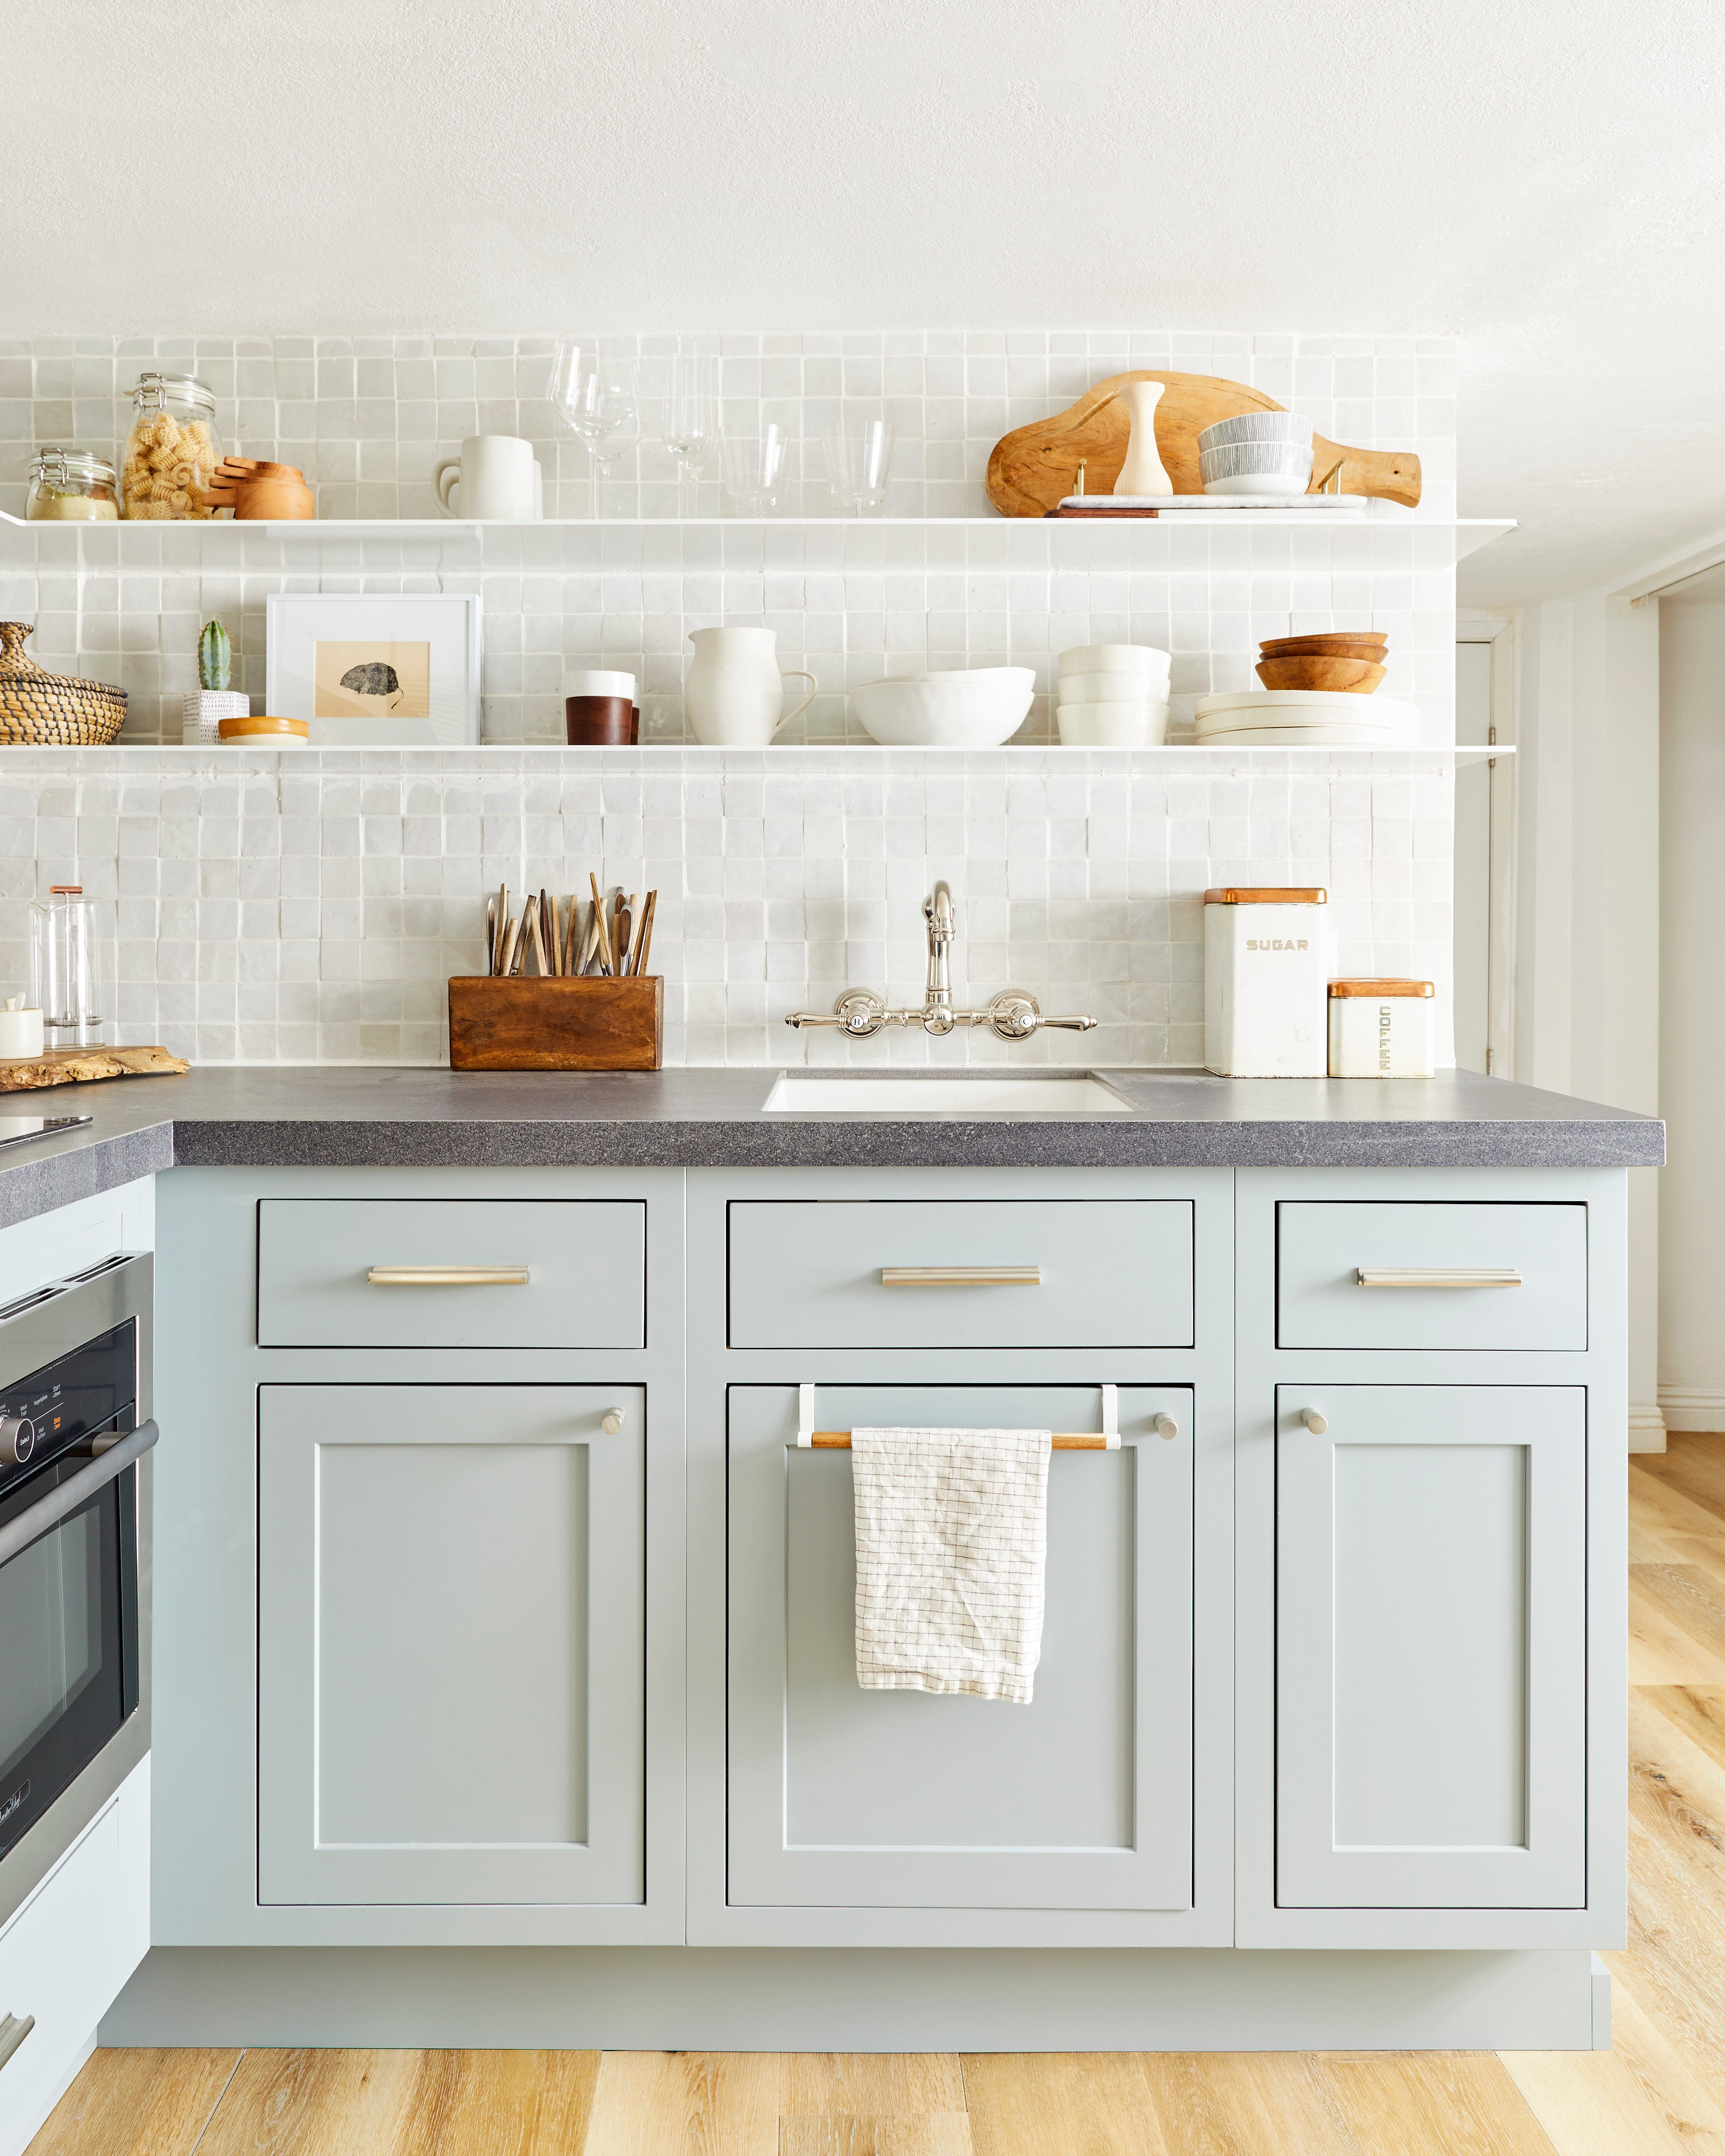 Repainting Kitchen Cabinets Pictures Ideas From Hgtv: What You Need To Know About Probiotic Cleaners